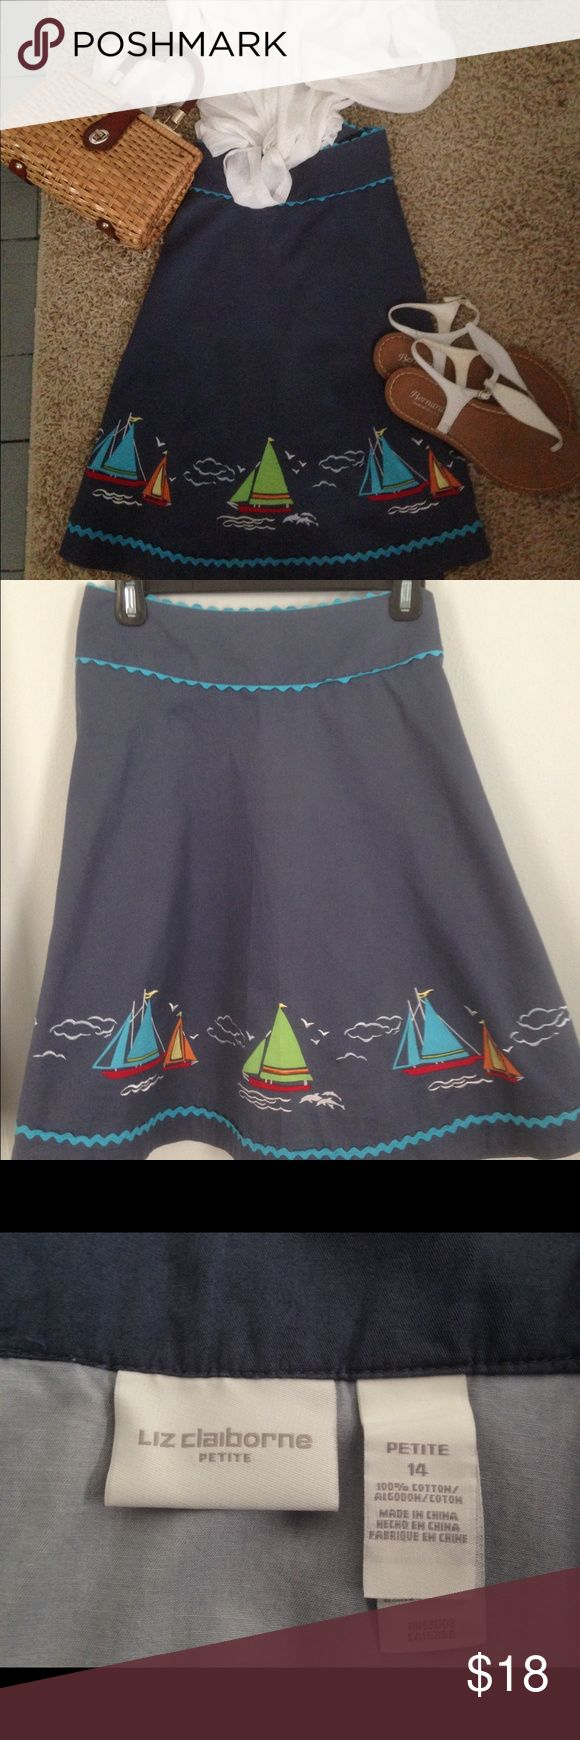 """Sail away in this cute summer skirt! Liz Claiborne Petite 14. Marine blue cotton with robin's egg blue ric rac at the waist and hem. A-line with a little swing to it! Colorful boats sail  along the hemline. Waist measures 36"""" and it's 22"""" in length. Cute and classy! Liz Claiborne Skirts A-Line or Full"""